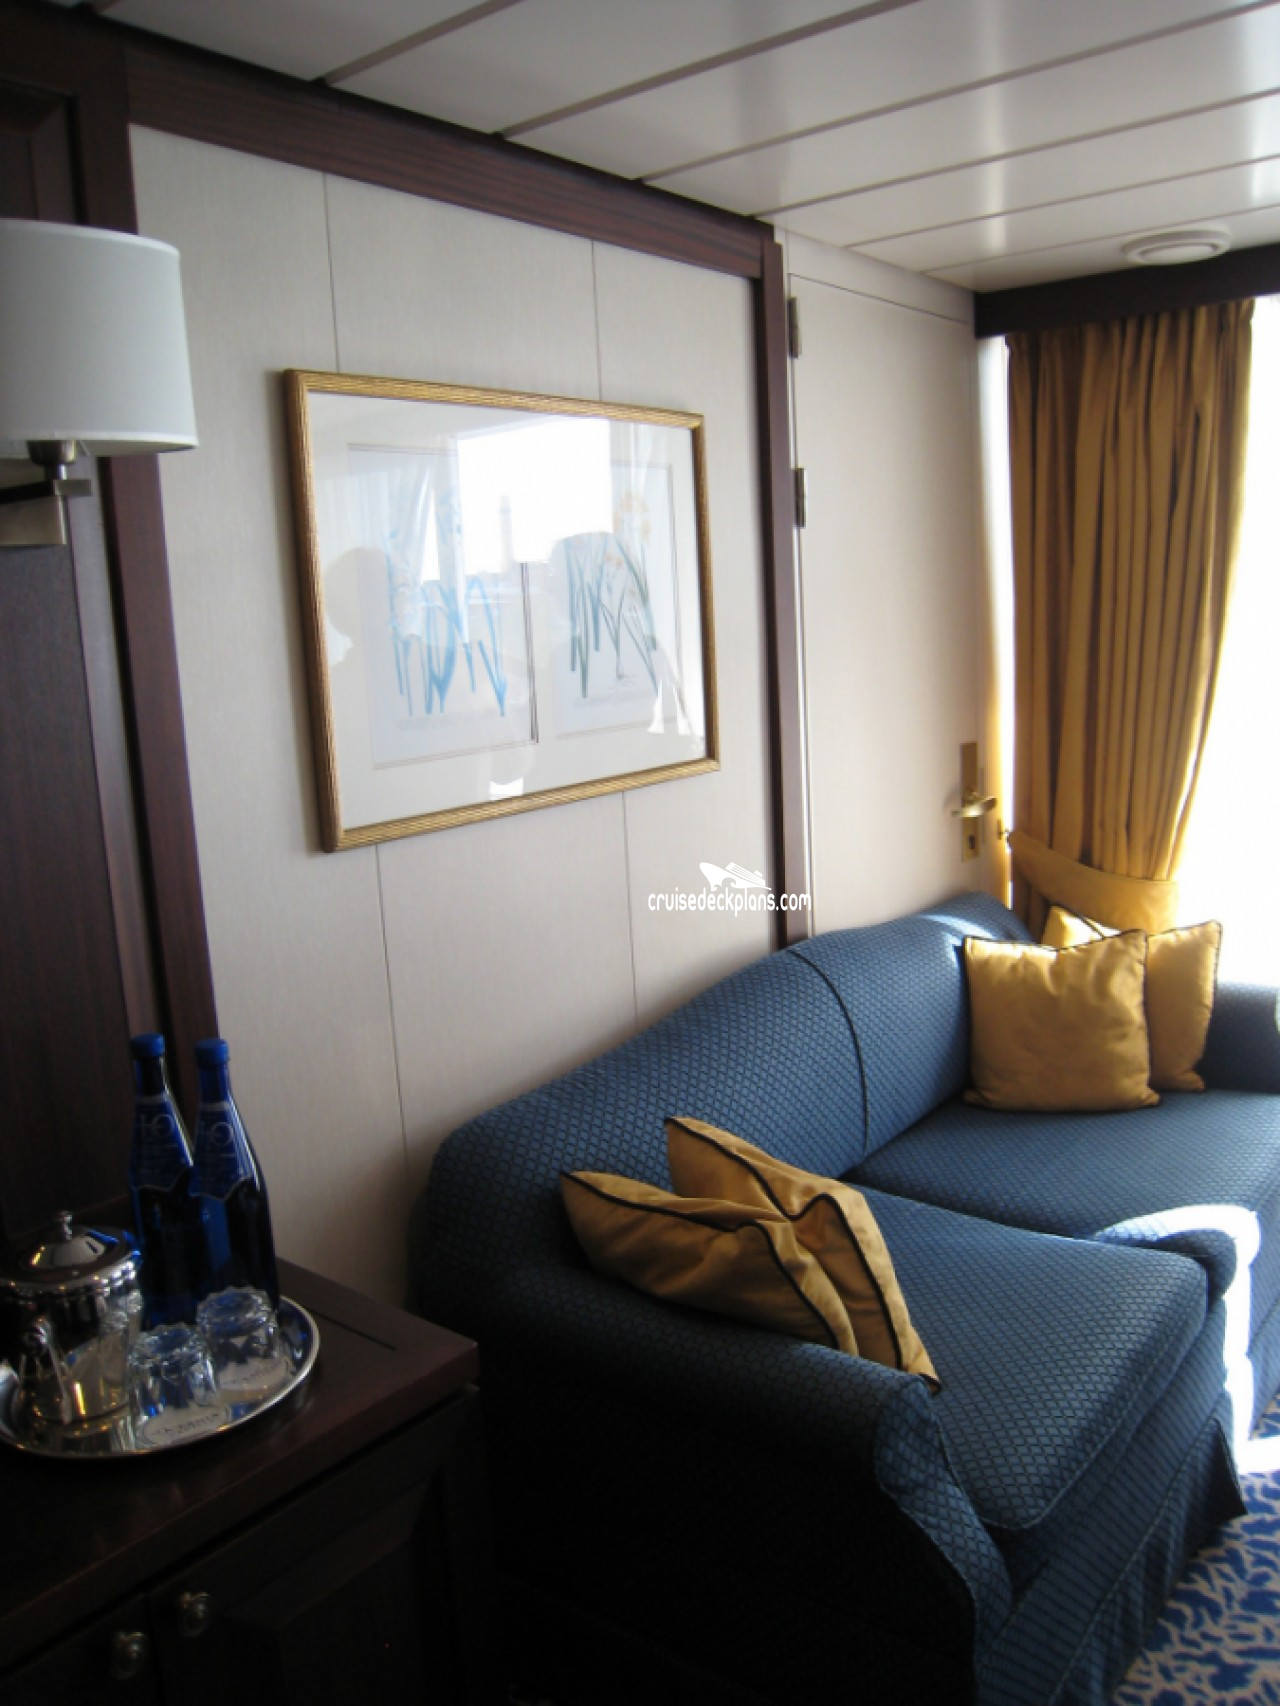 Penthouse Stateroom Picture